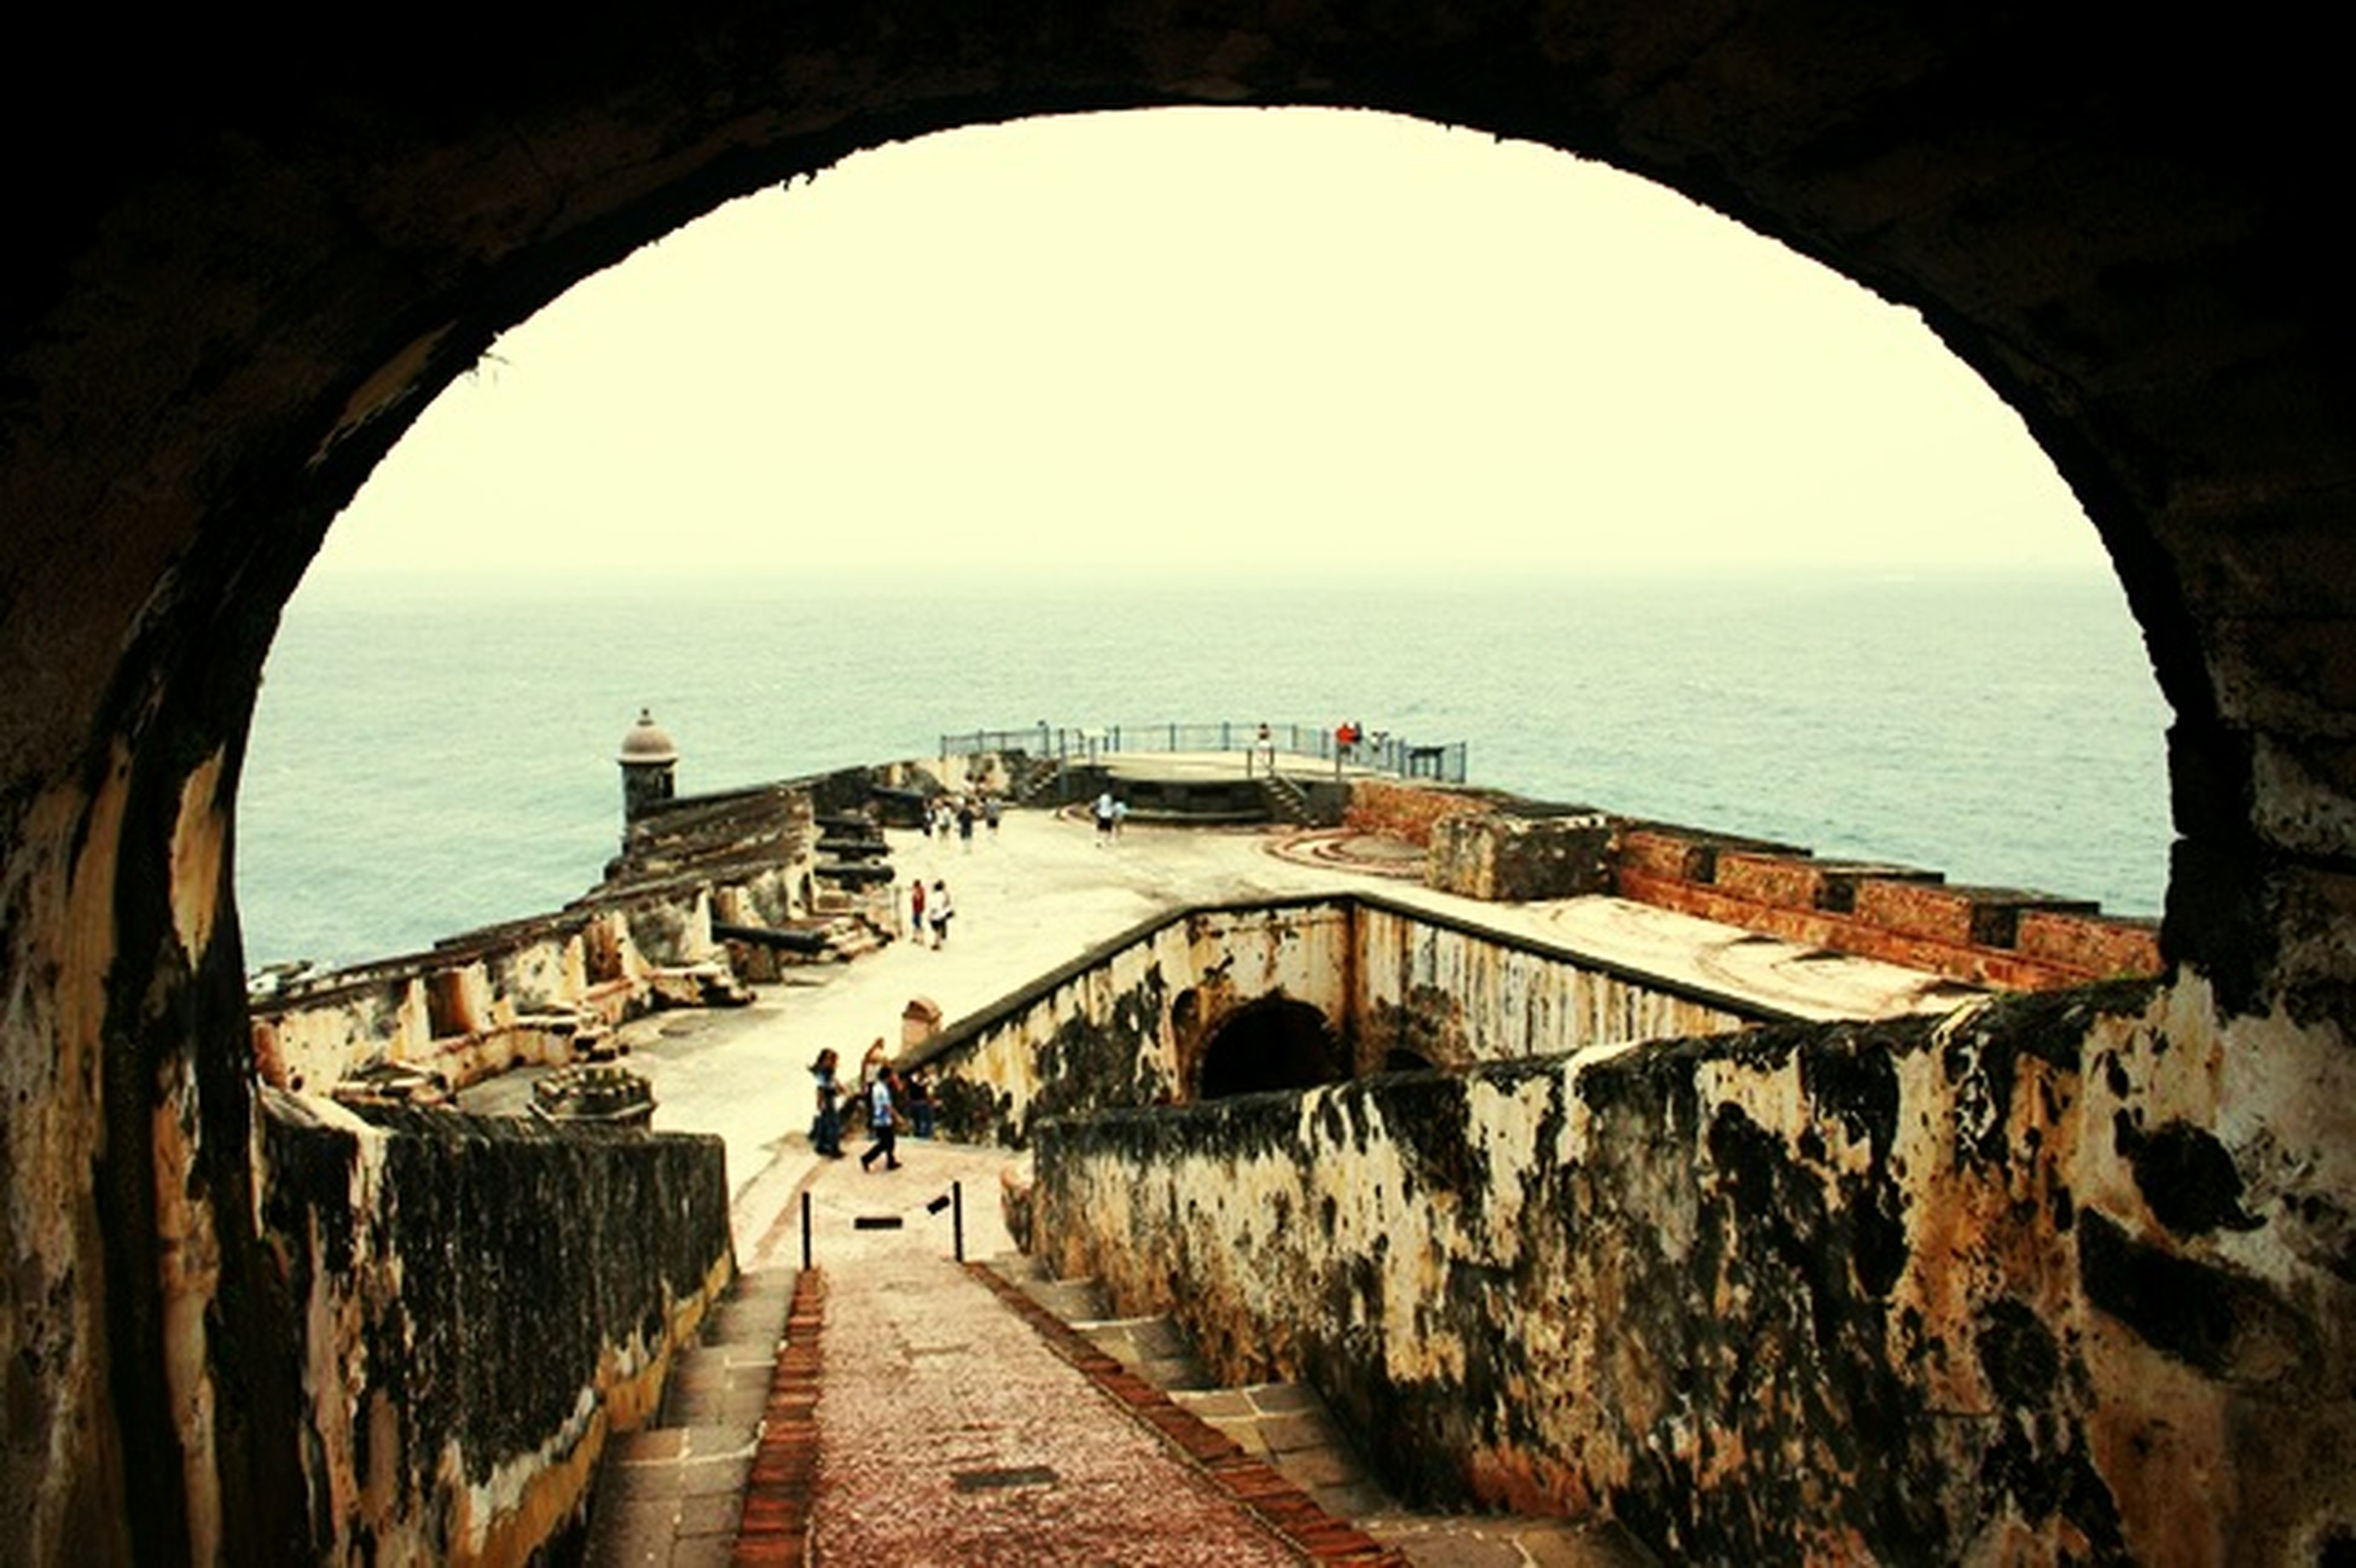 sea, horizon over water, the way forward, built structure, architecture, arch, water, indoors, incidental people, narrow, clear sky, sky, archway, diminishing perspective, blue, tourism, railing, beach, day, sunlight